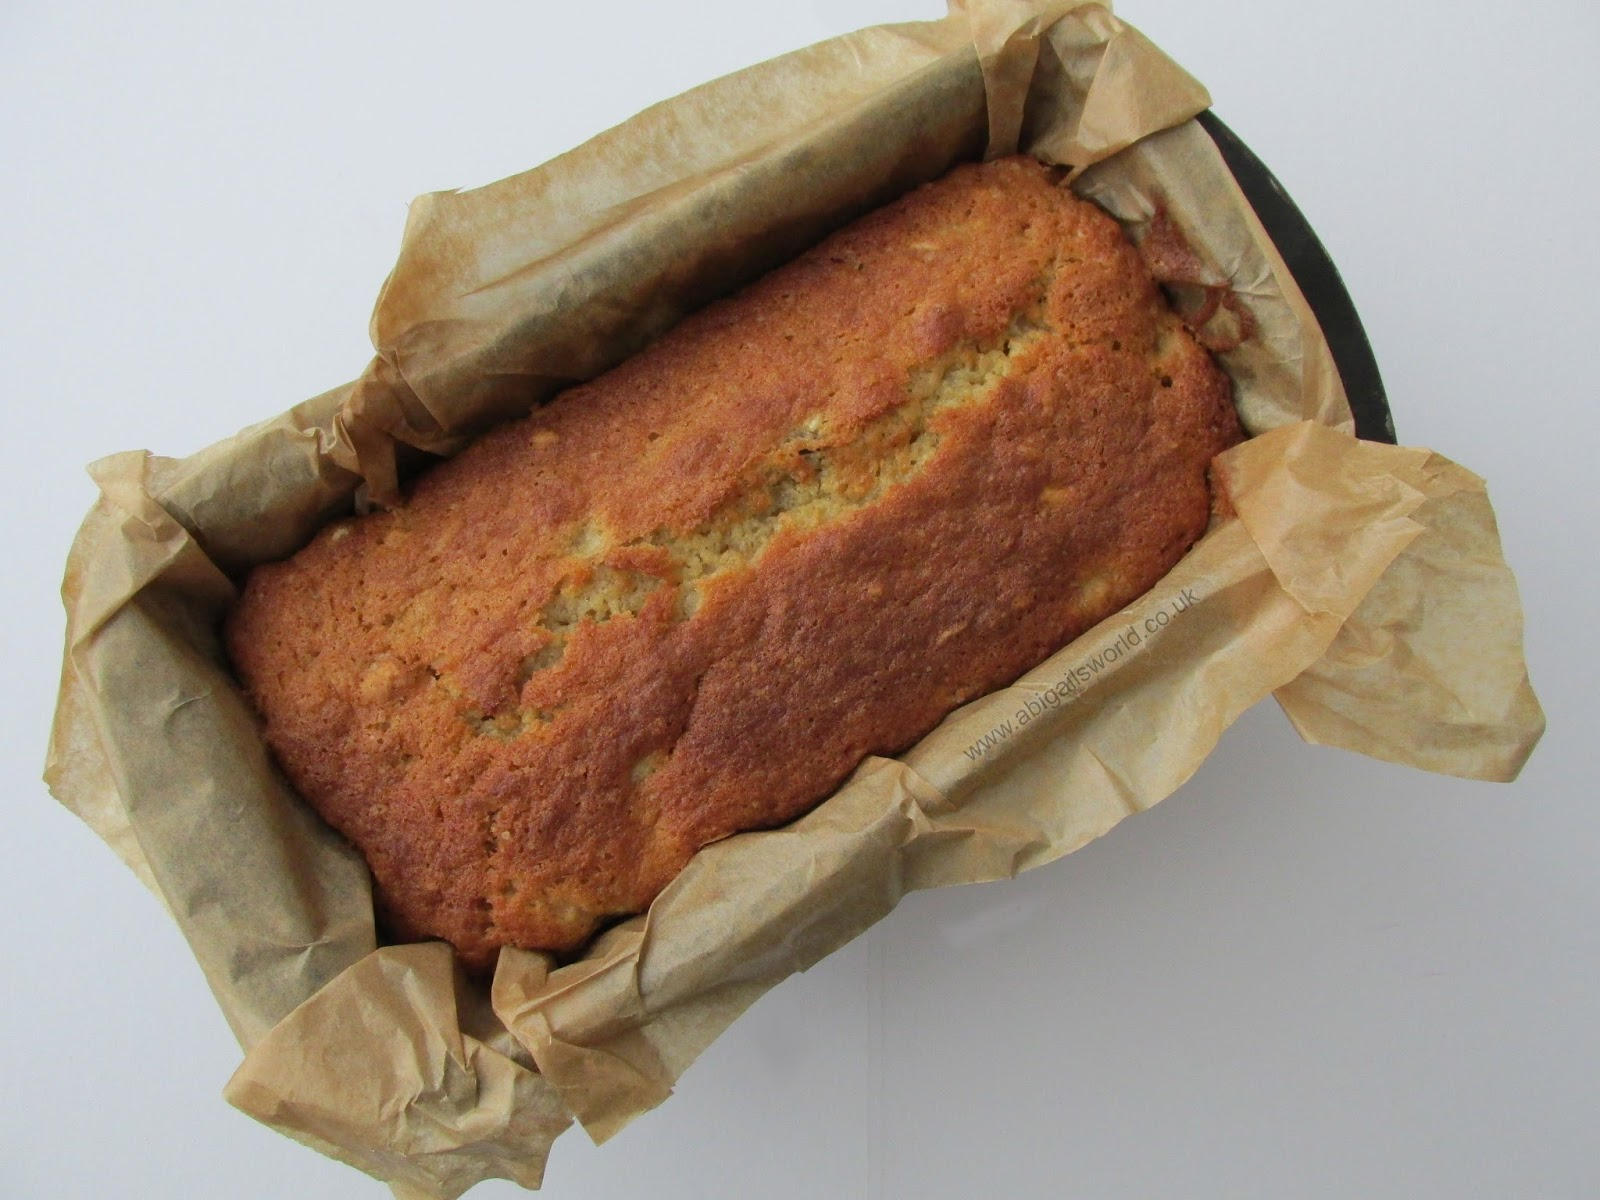 Abigails world august 2016 todays recipe is banana loaf which i made a couple of weeks ago and it went down a treat i originally found the recipe here on bbc good food and although forumfinder Gallery